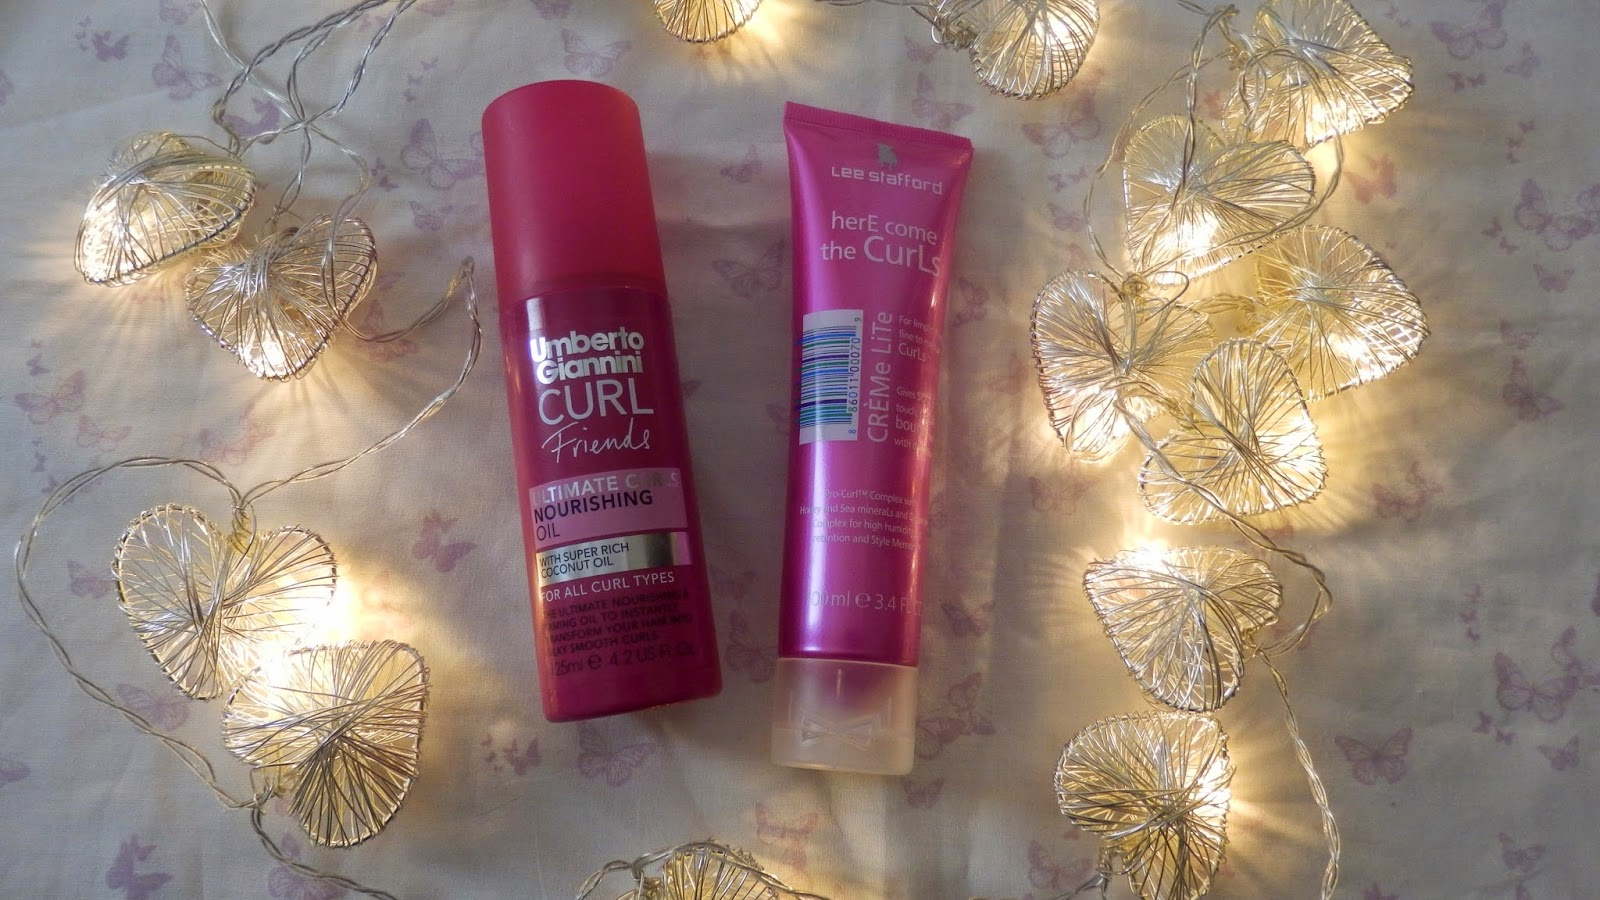 Umberto Giannini Curl Friends Ultimate Curl Nourishing Oil and Lee Stafford HerE come the CurLs